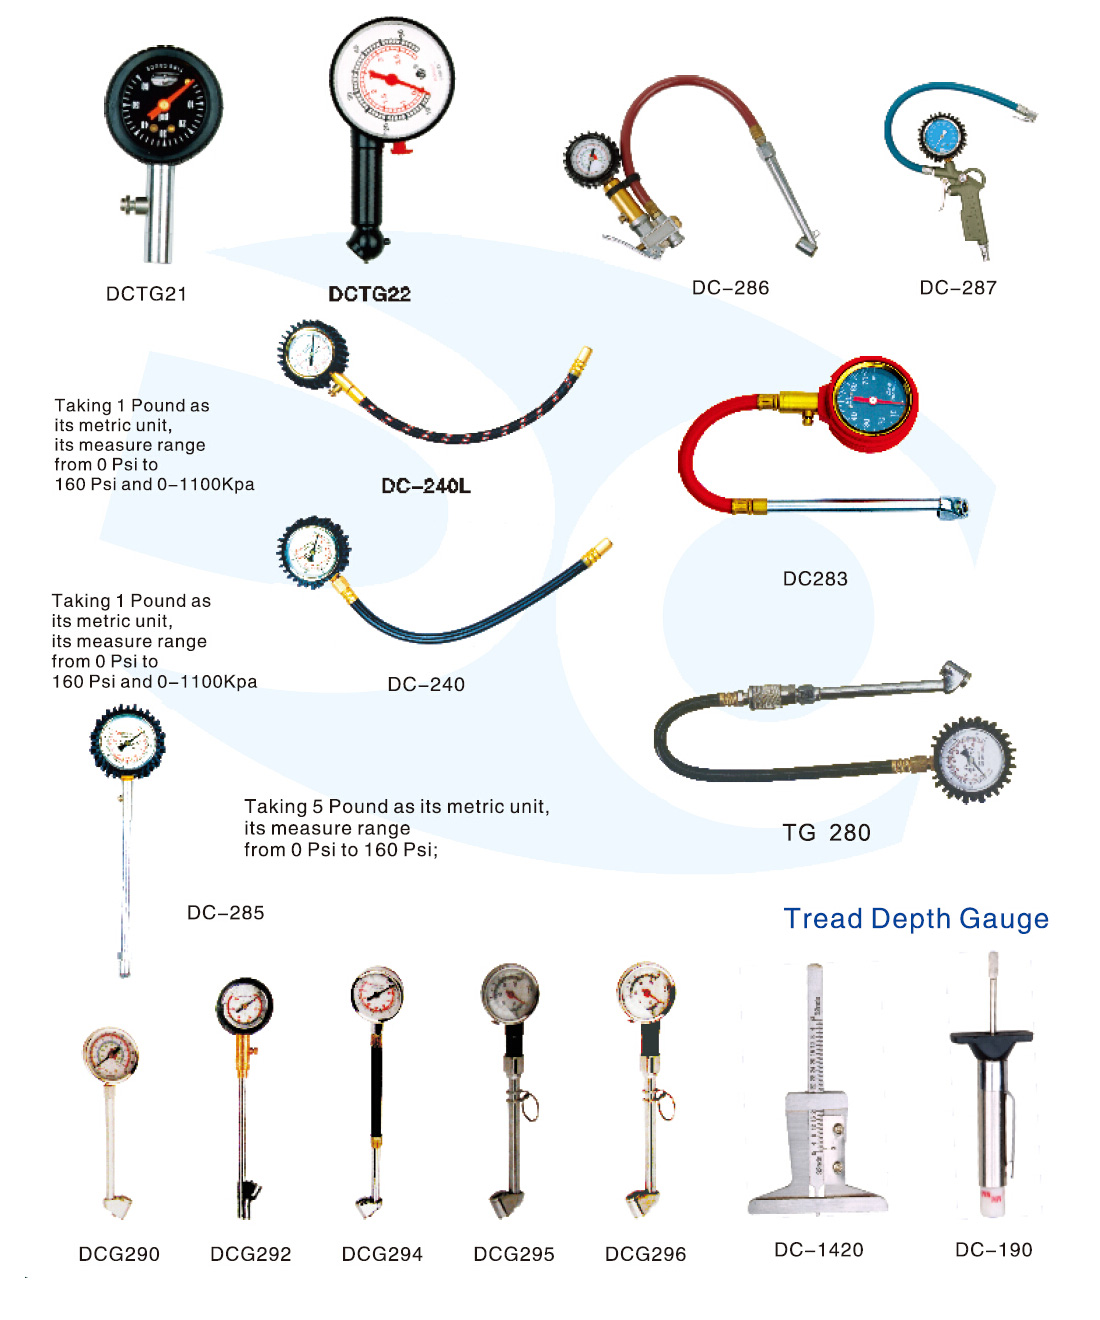 Tire Pressure Gauge Diagram Trusted Wiring Diagrams Air Schematic And Gaugeswheel Accessoriesyangzhou Haina